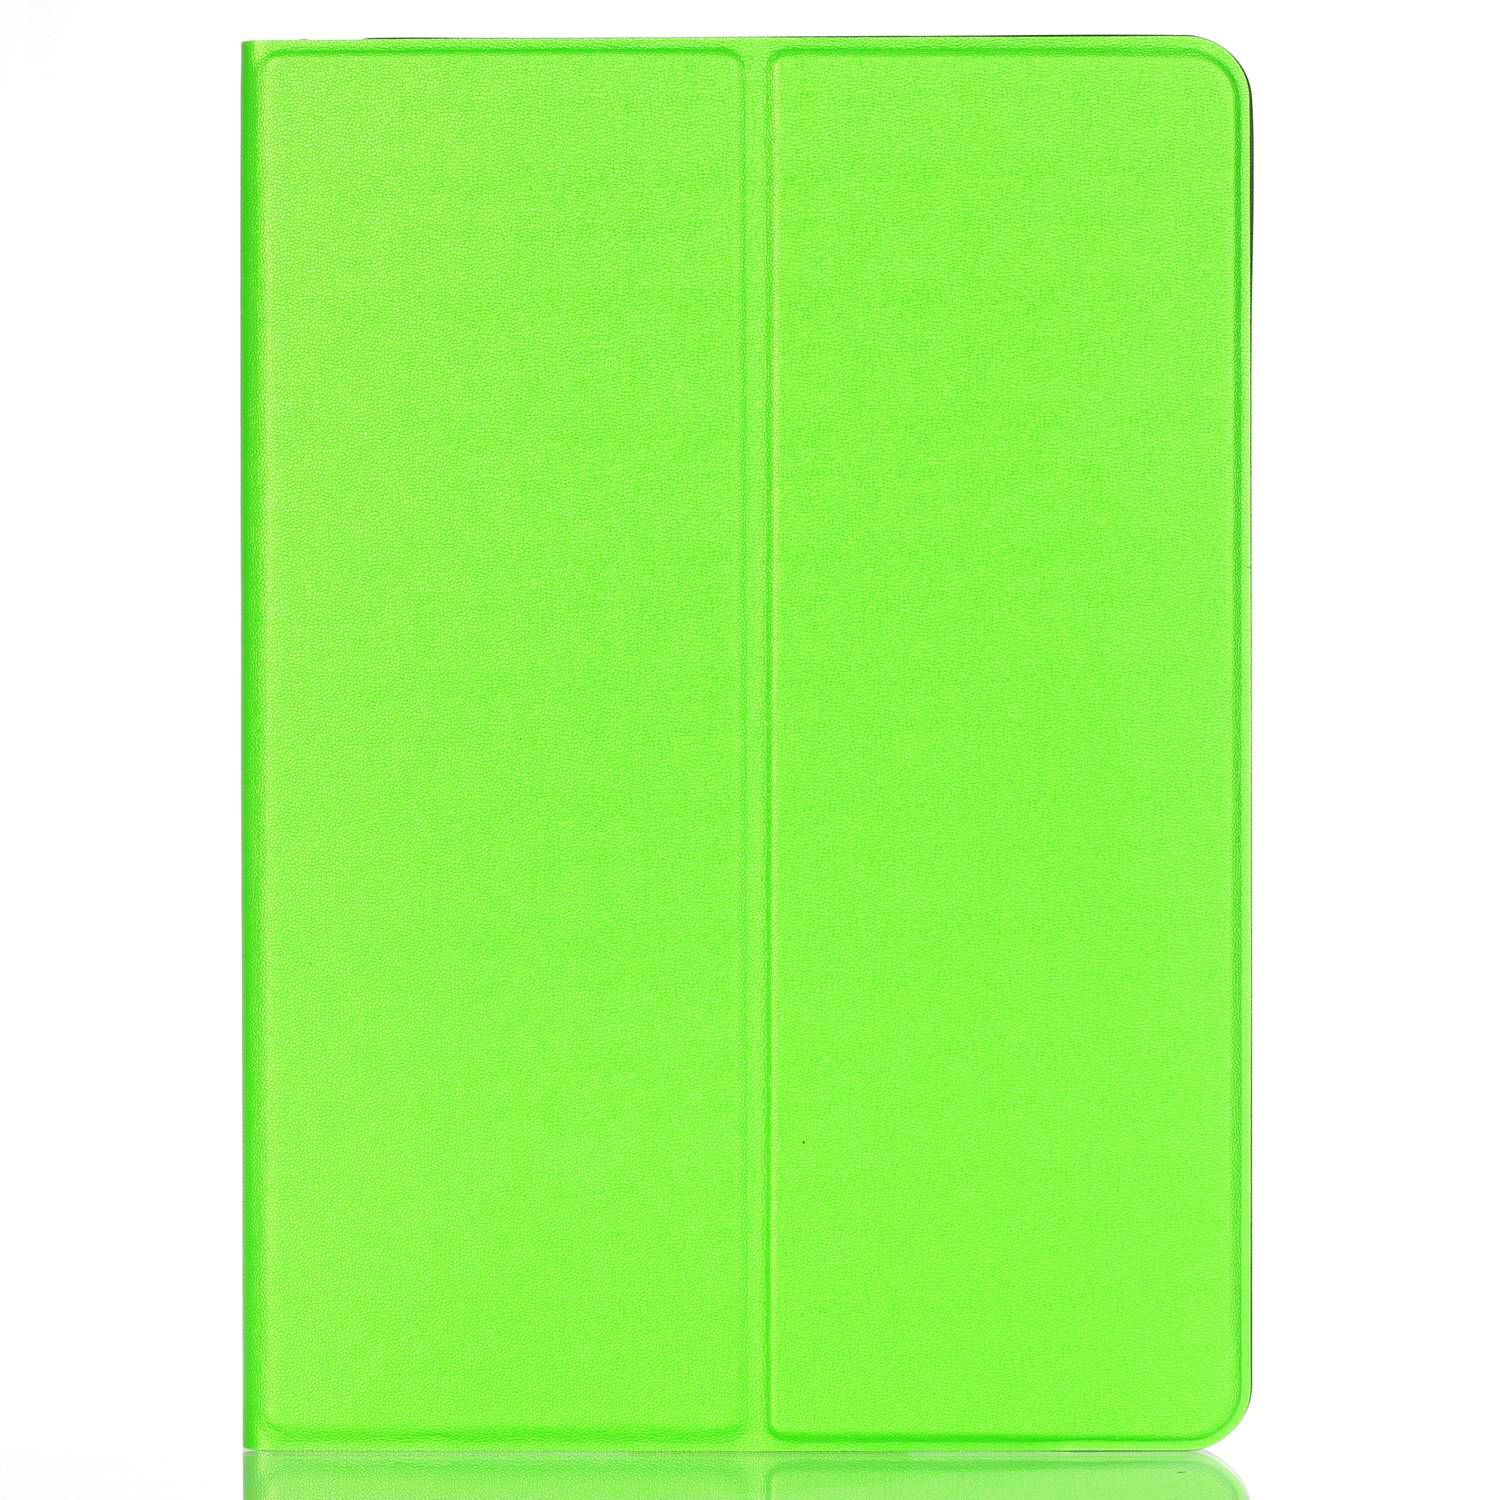 Custodia-Per-Apple-IPAD-Pro-IN-9-7-Pollici-Case-Cover-Protettiva-Skin-Shell miniatura 38